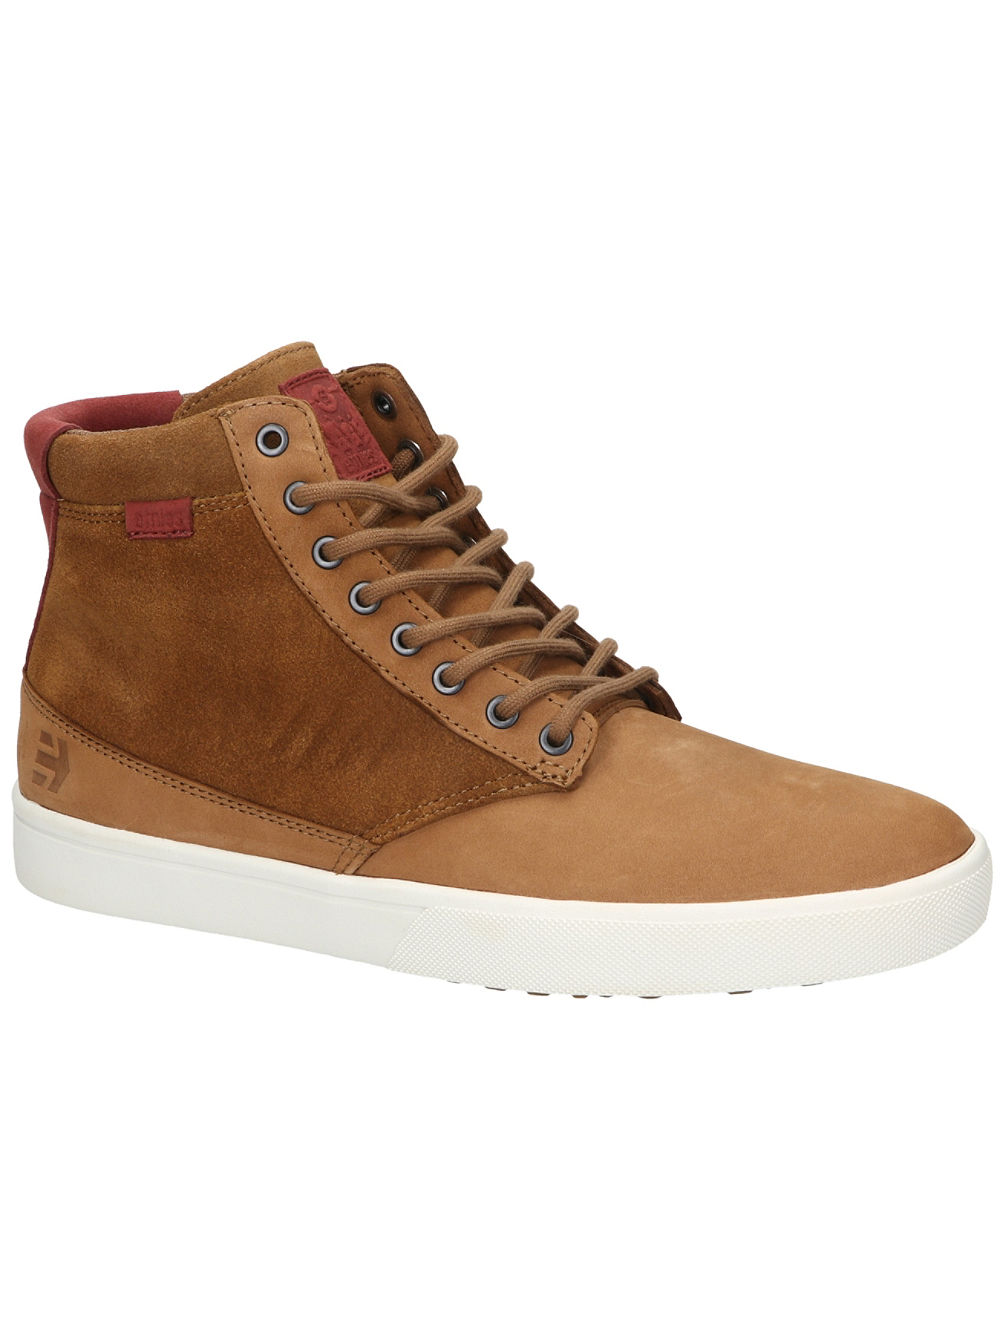 Jameson HTW Shoes